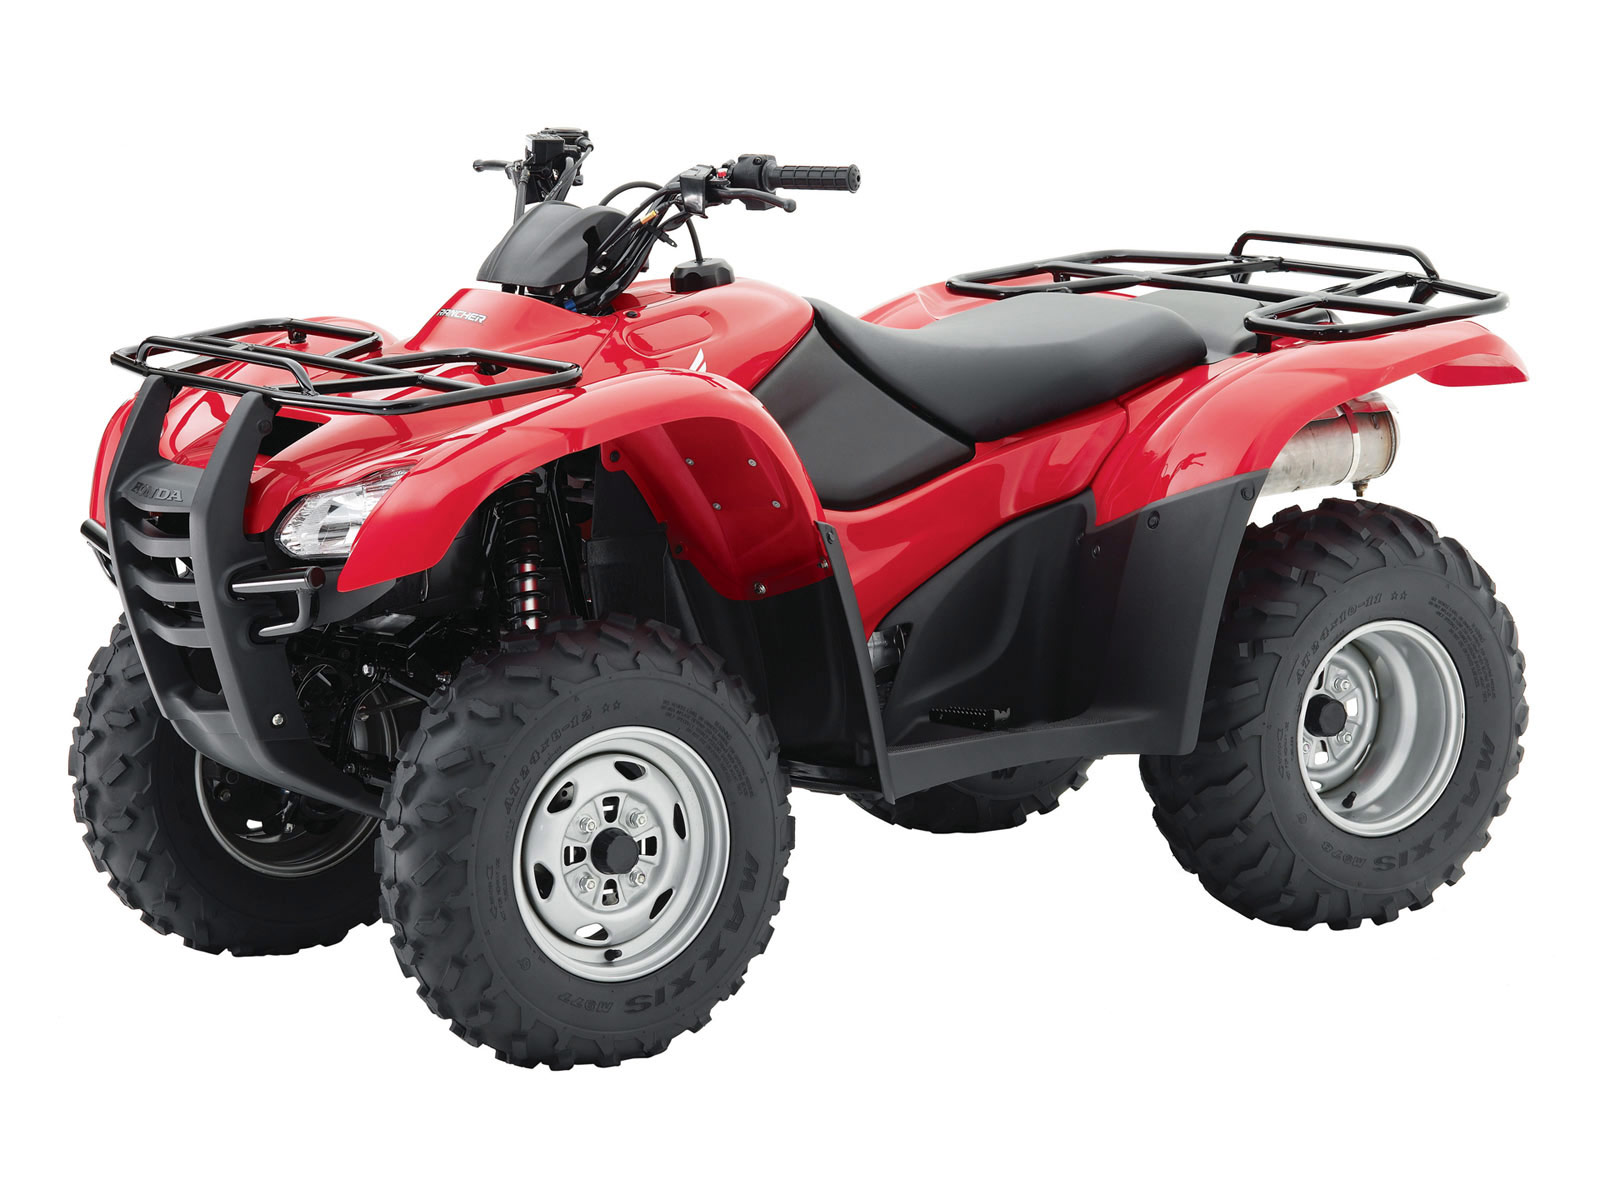 2010 HONDA FourTrax Rancher ATV wallpapers 1600x1200